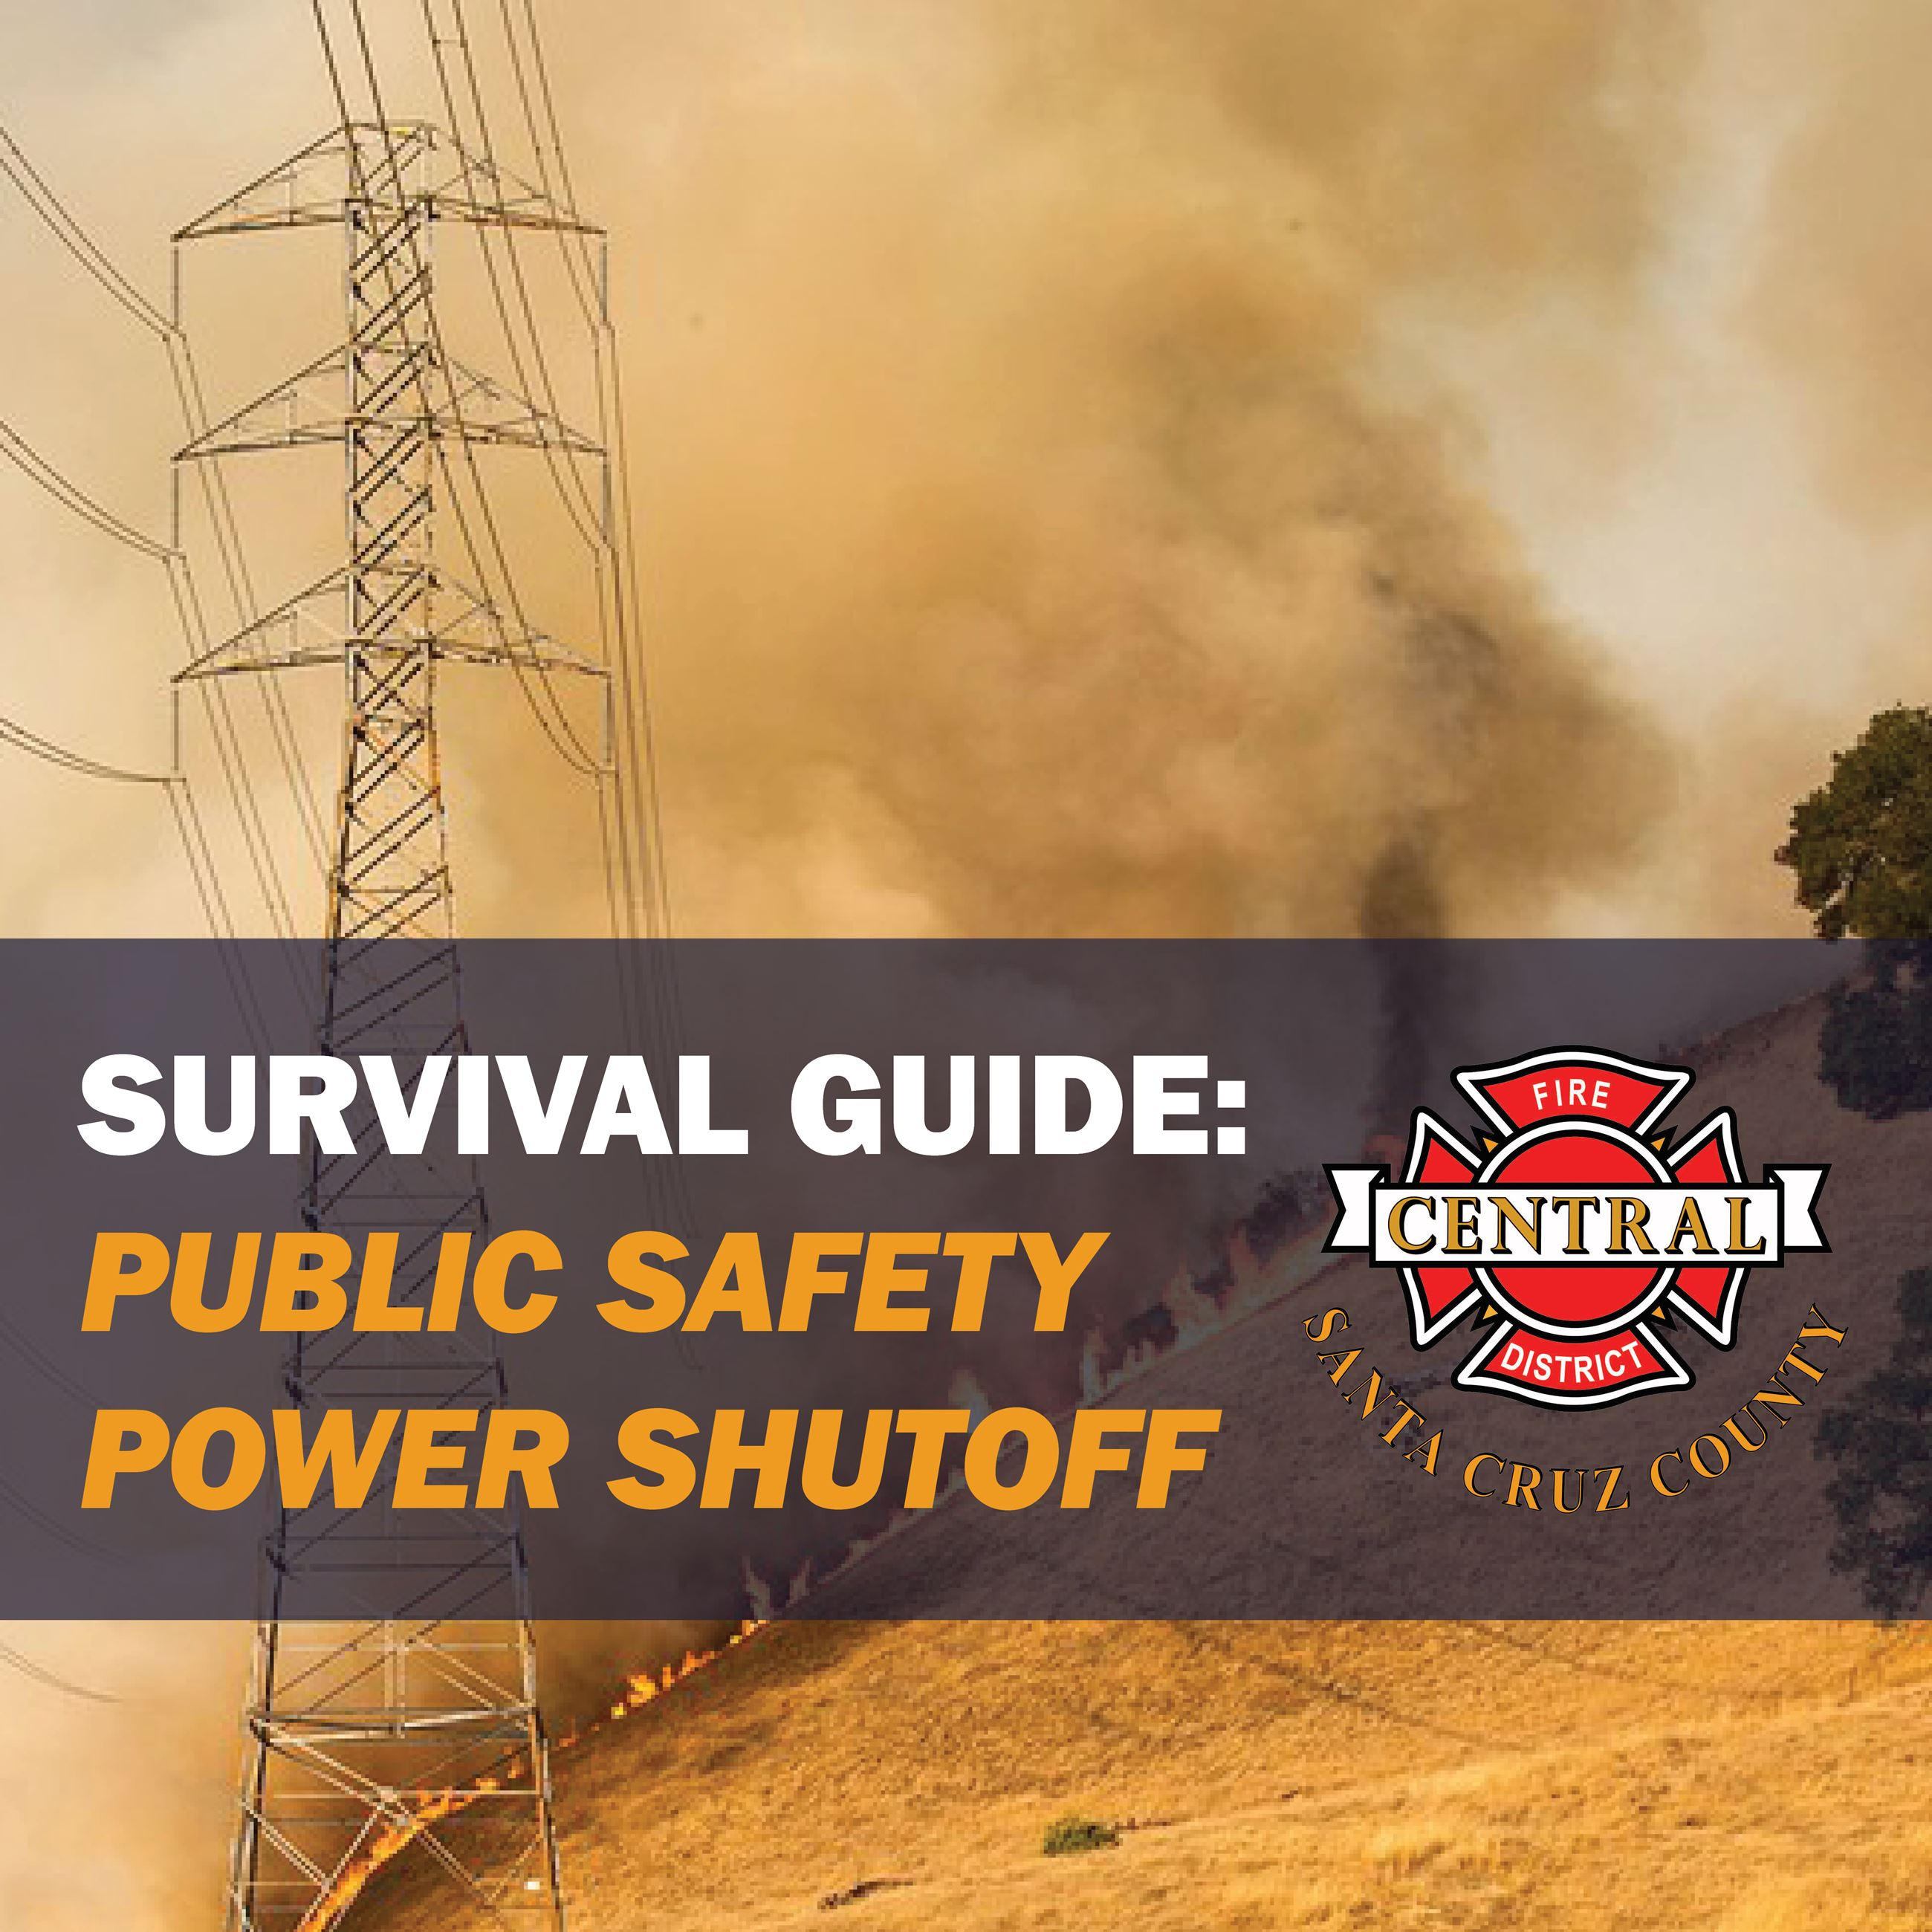 Public Safety Power Shutoff Survival Guide - Central Fire